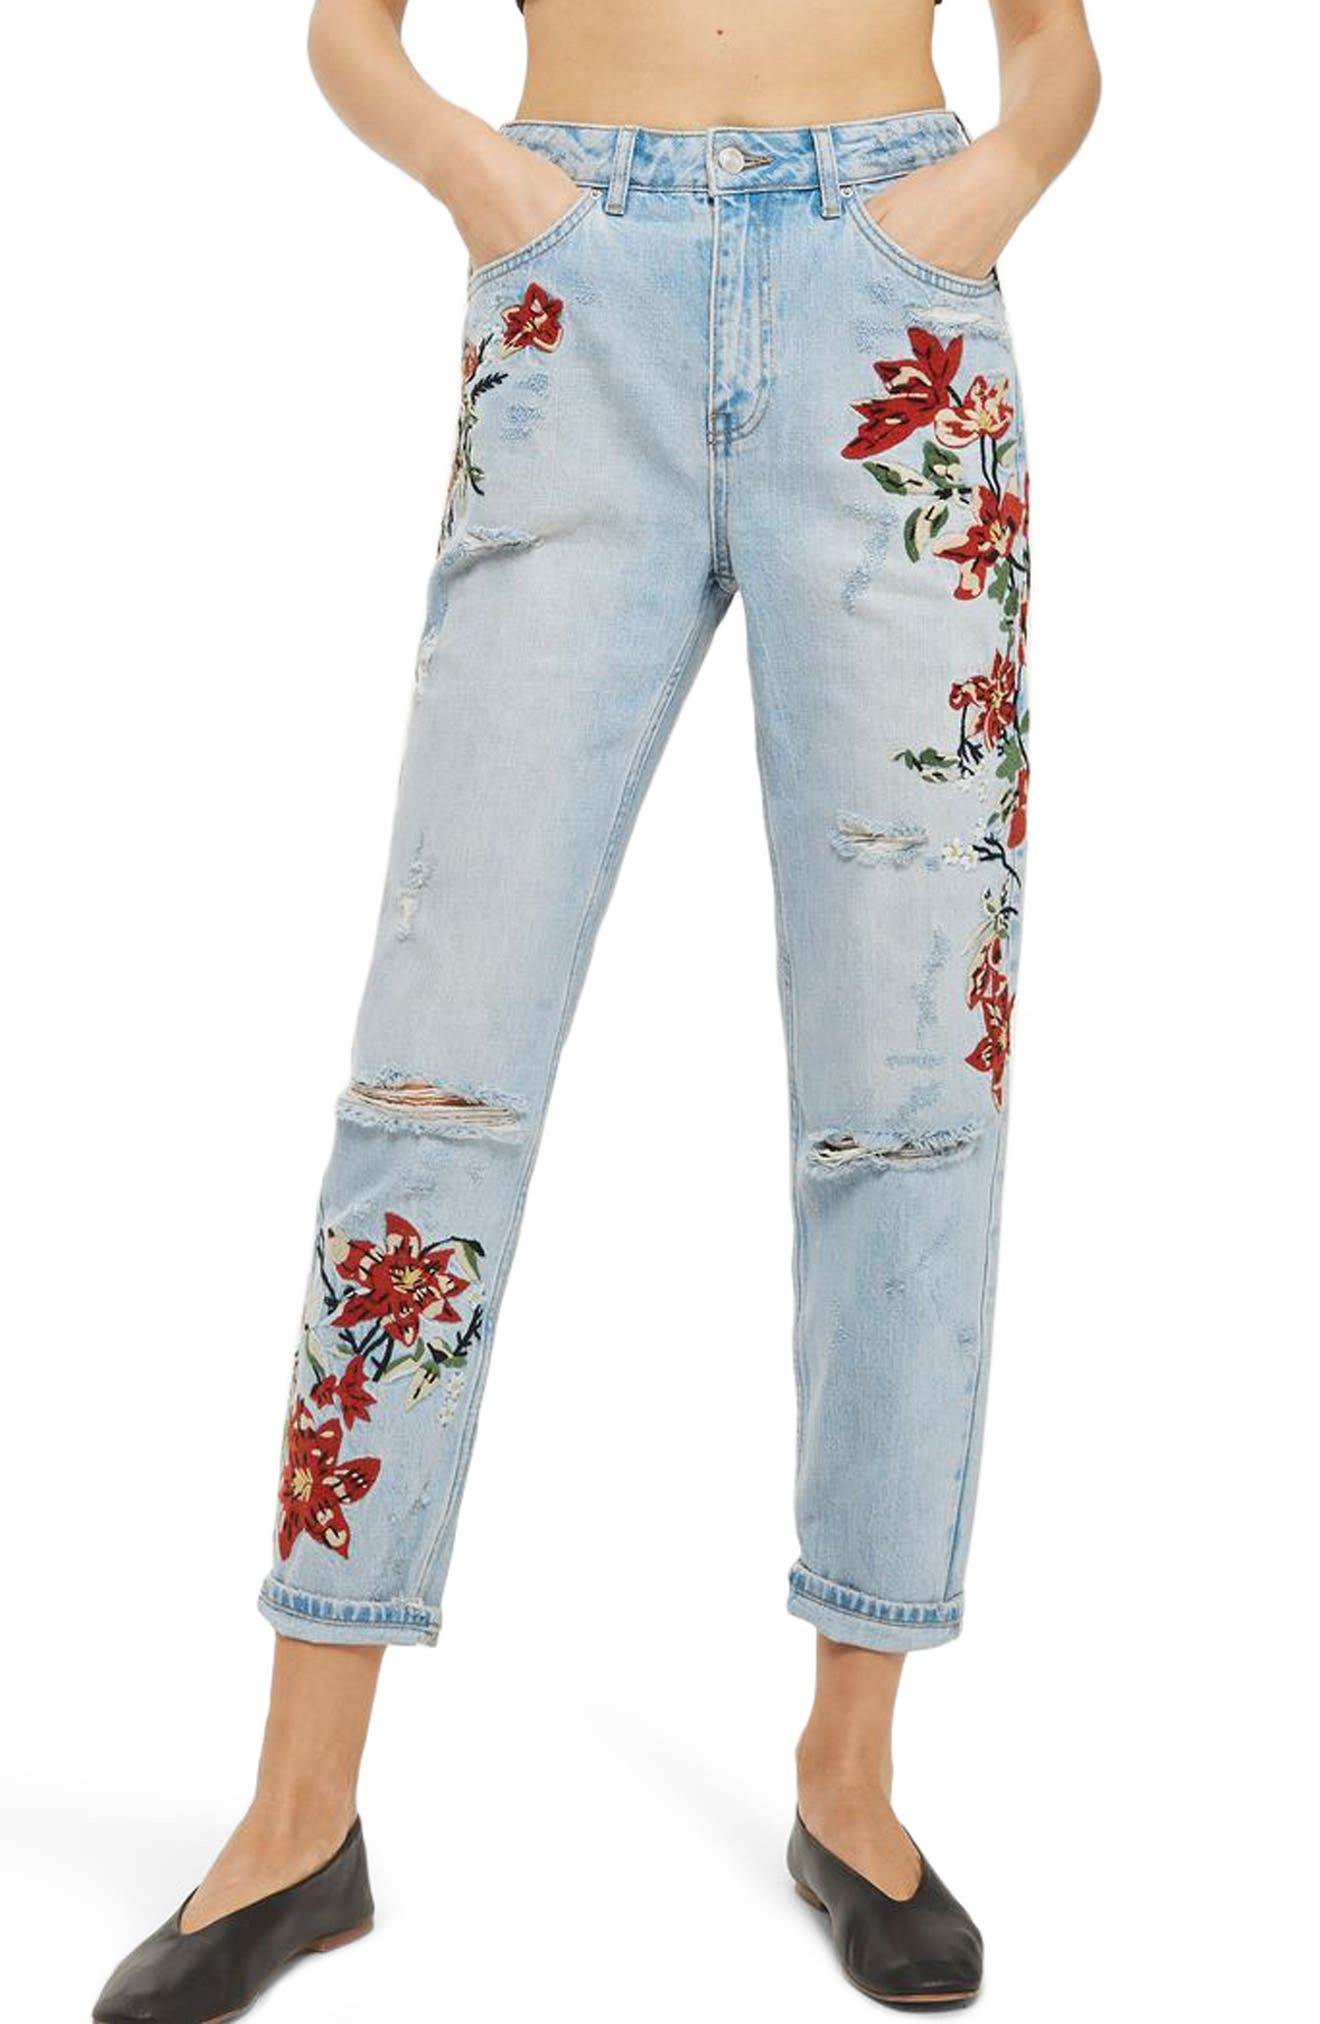 Fire Flower High Rise Ripped Mom Jeans,                             Main thumbnail 1, color,                             420